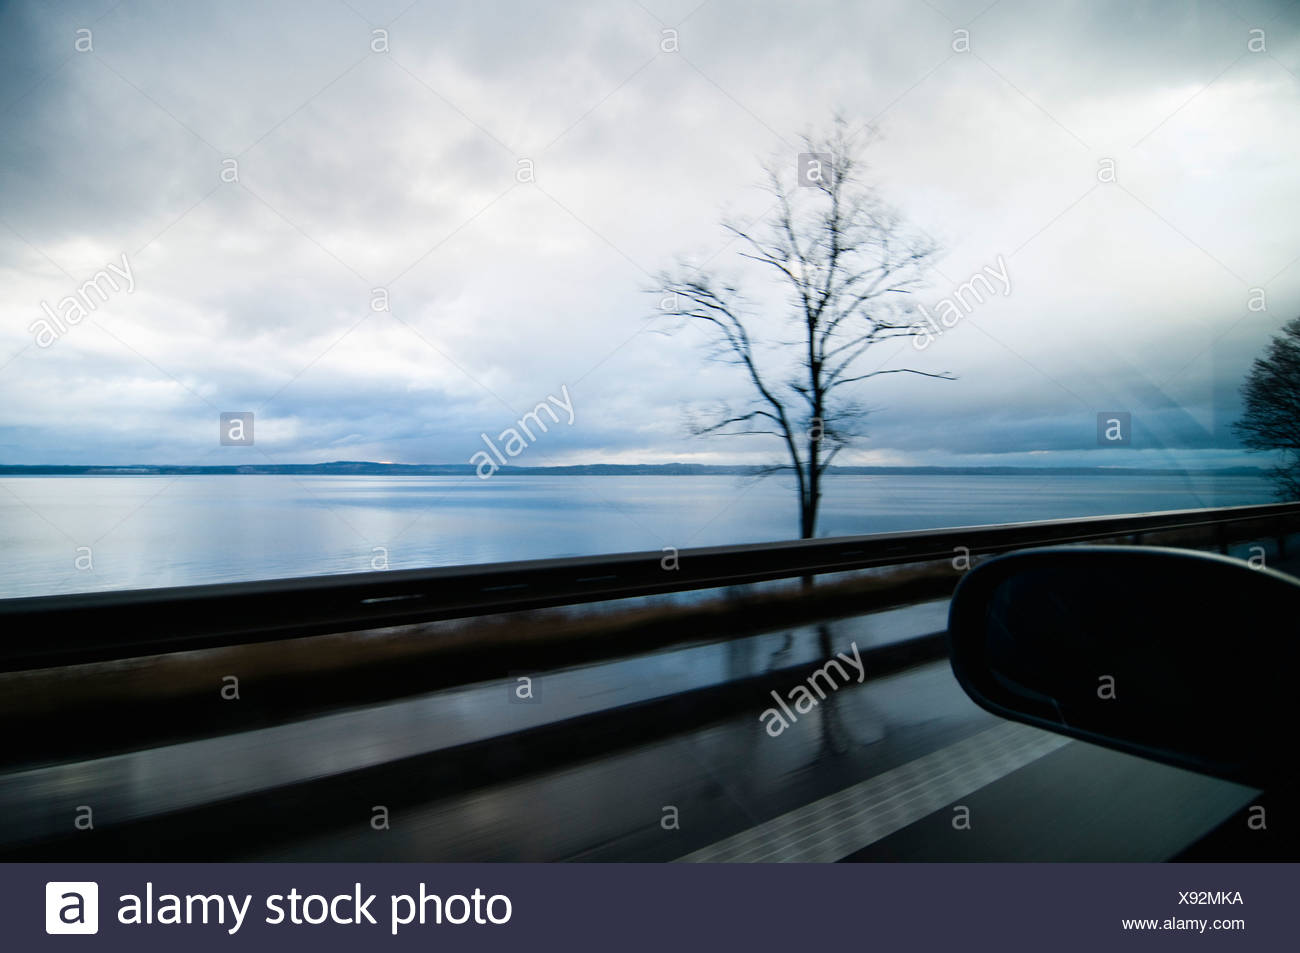 View over lake from car window Stock Photo